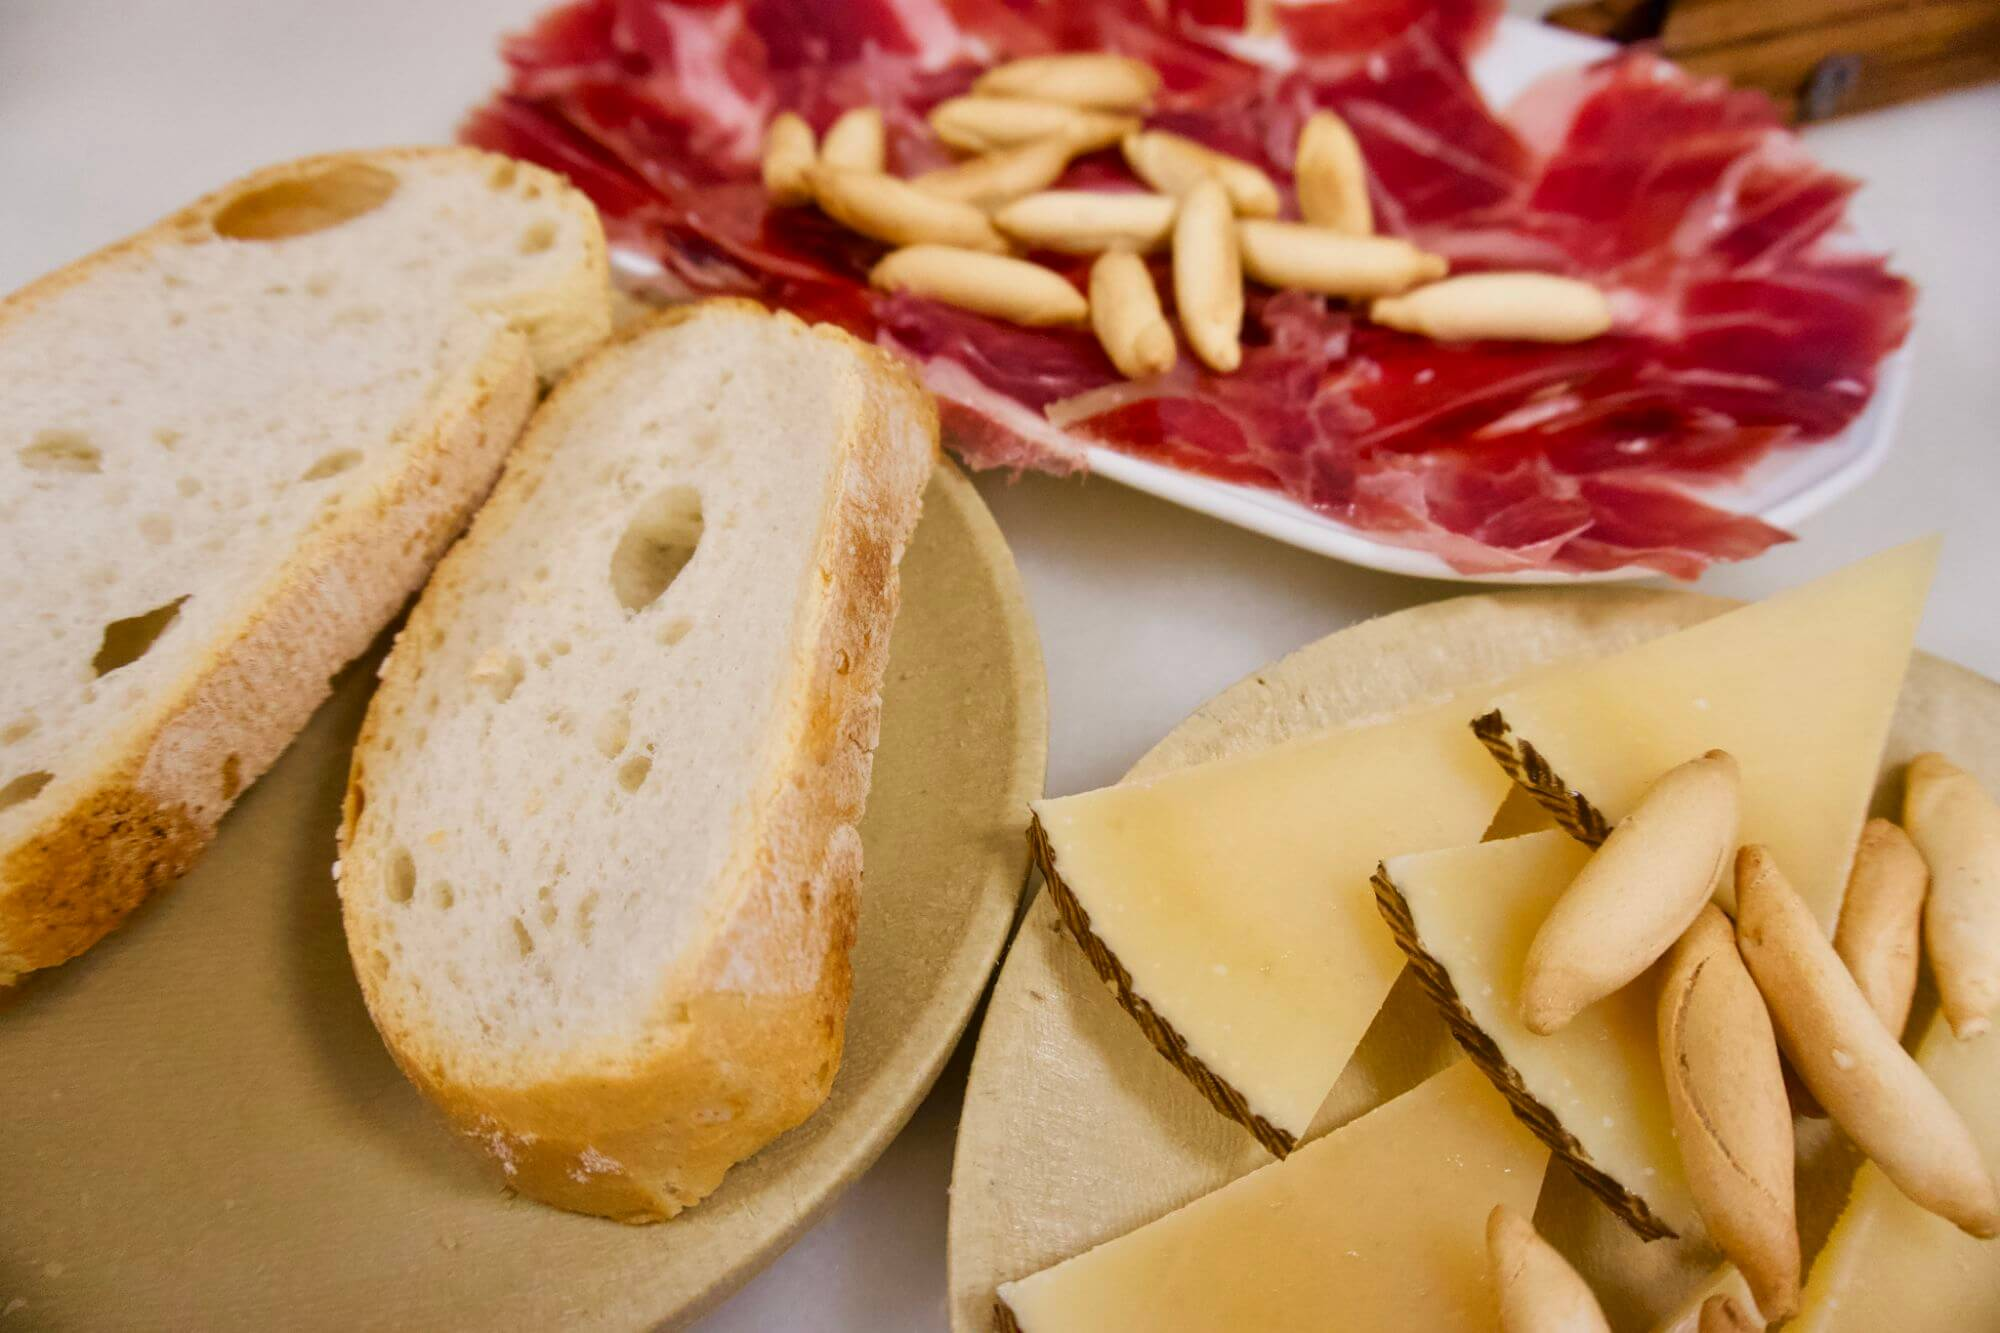 Tapas--cheese, jamon and bread